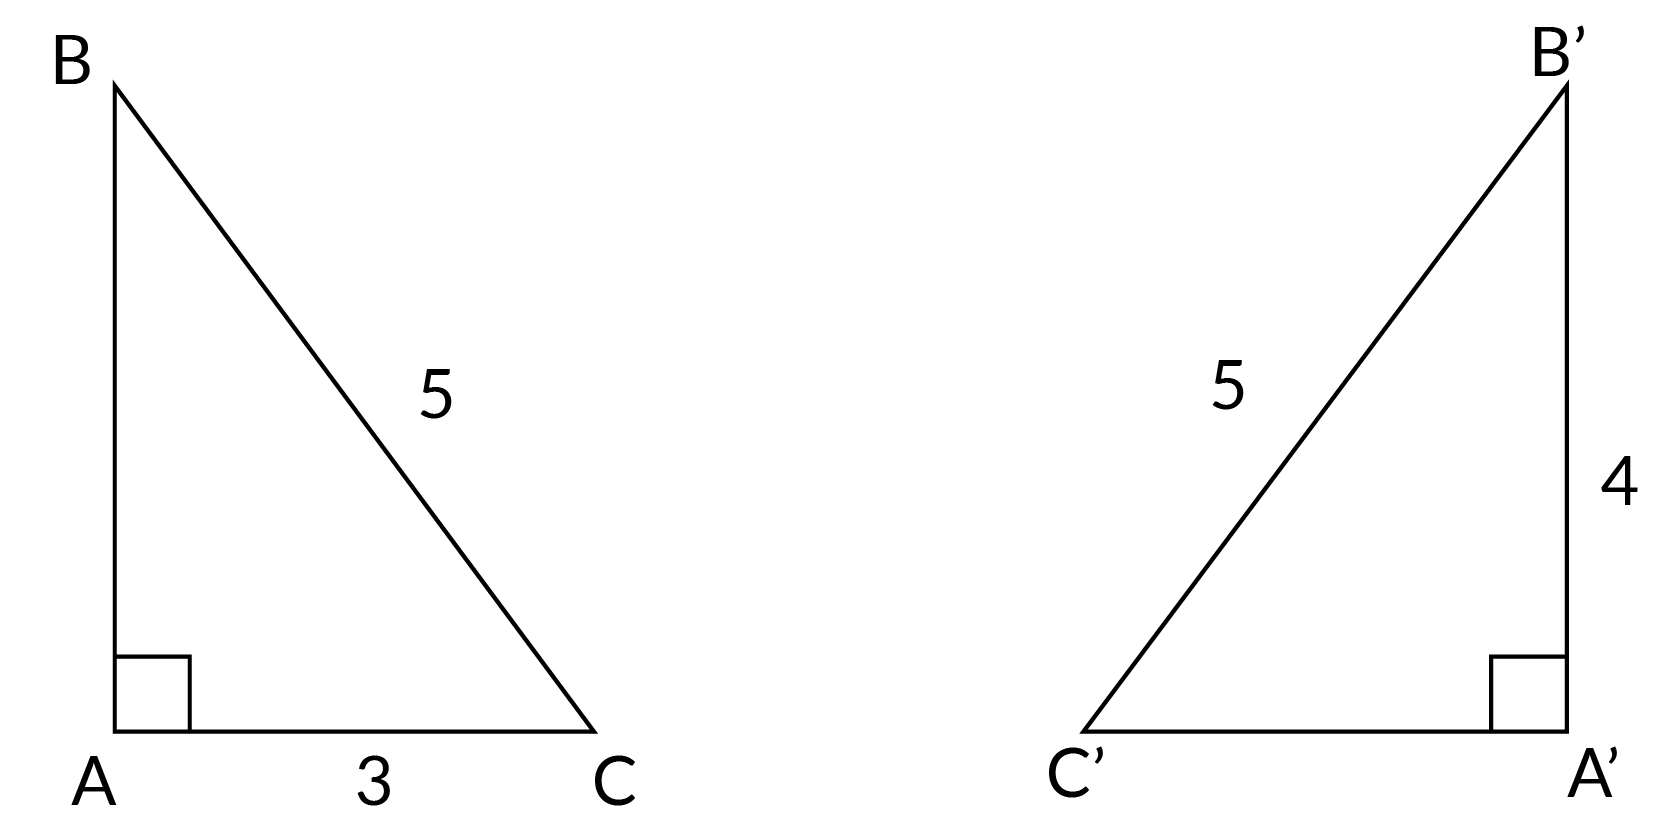 two triangles are congruent.